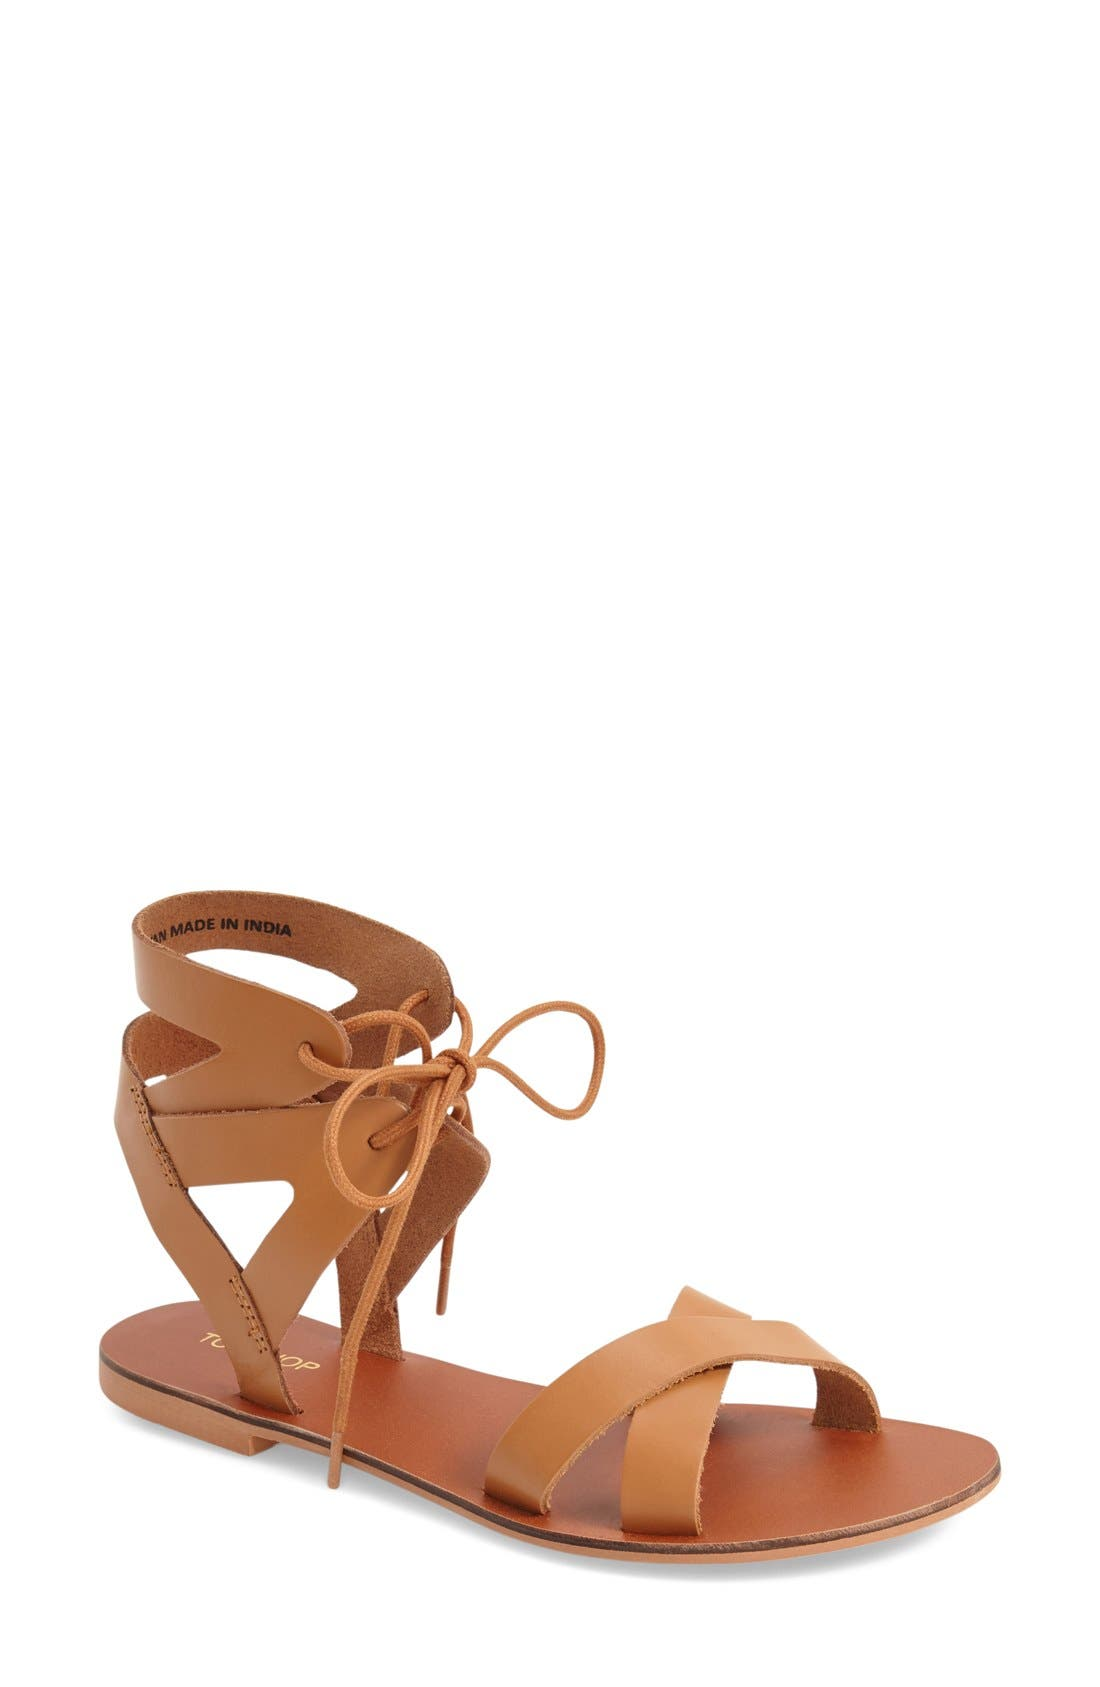 Main Image - Topshop 'Herb' Lace-Up Flat Sandal (Women)